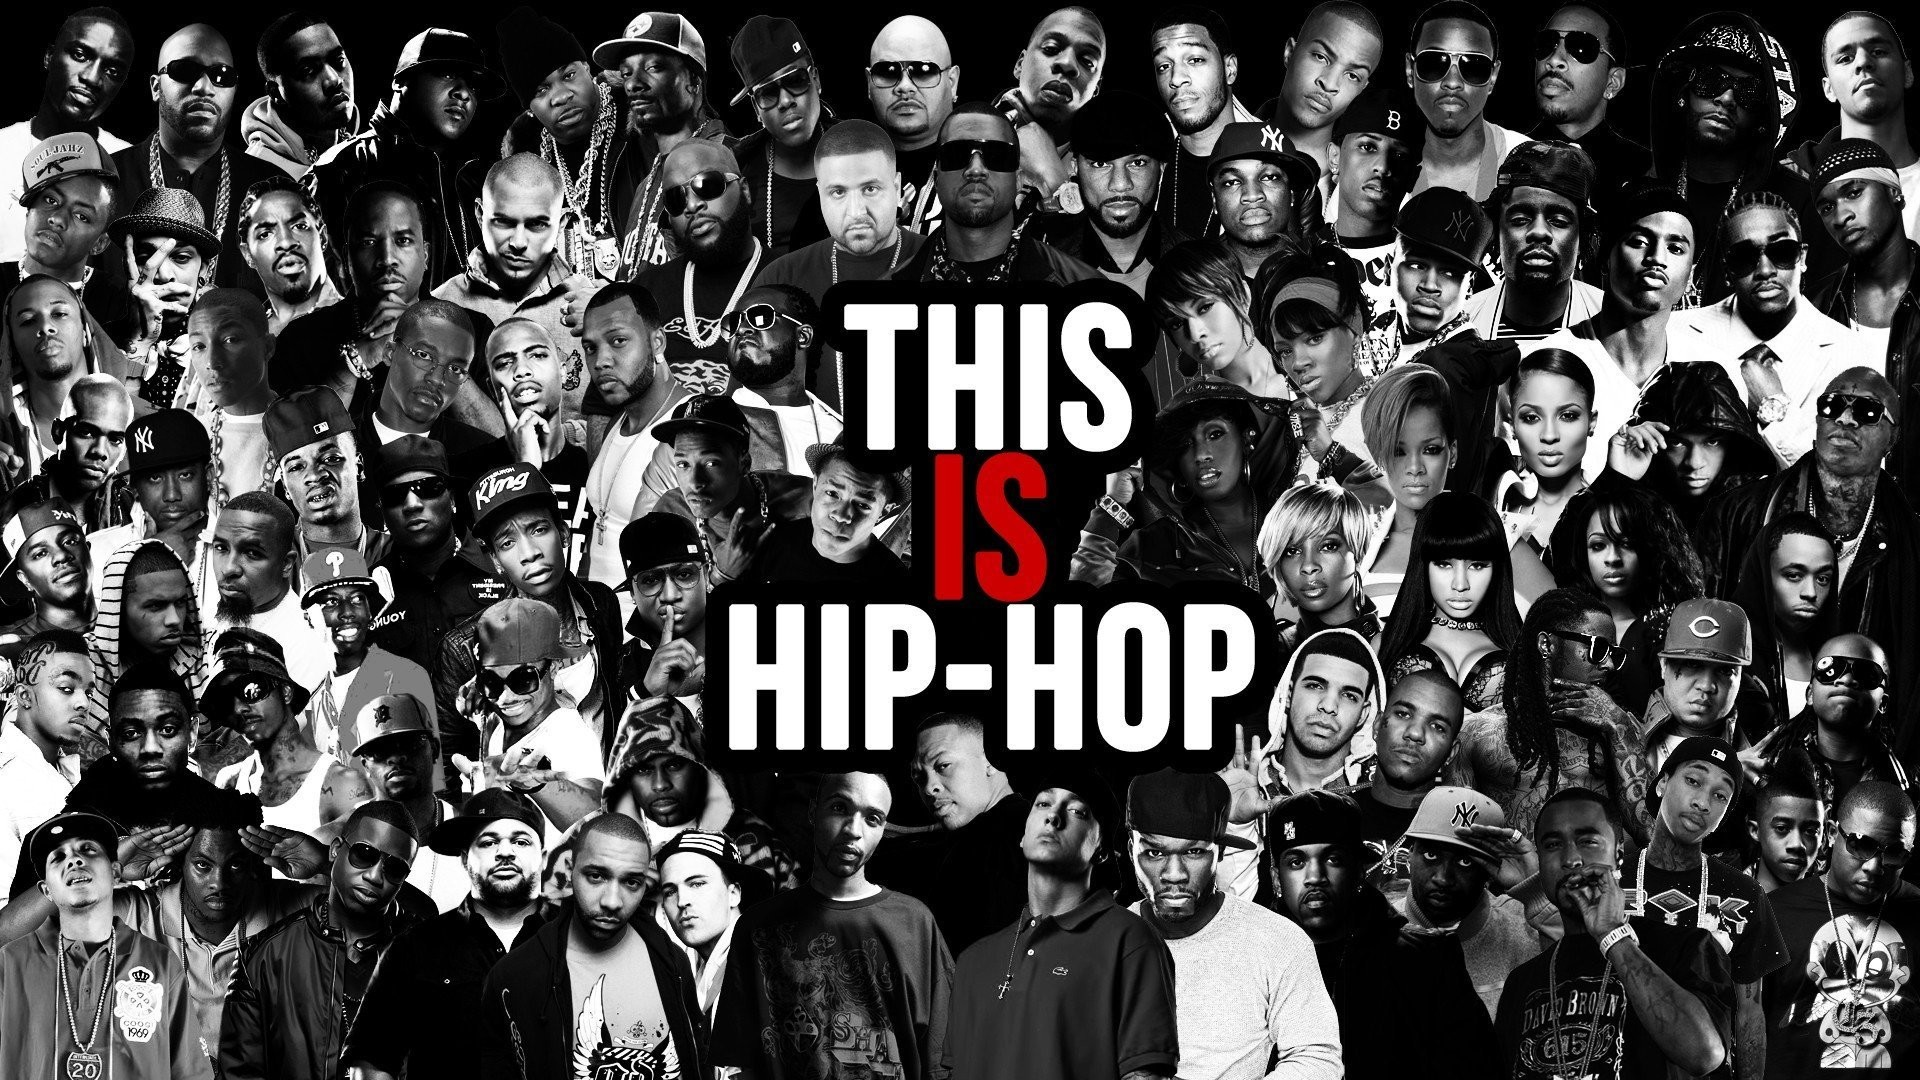 rap and hip hop in the united states Hip-hop becomes most popular genre in music for first time in us hip-hop and r&b reportedly make up 251 percent of the music consumed in the united states.